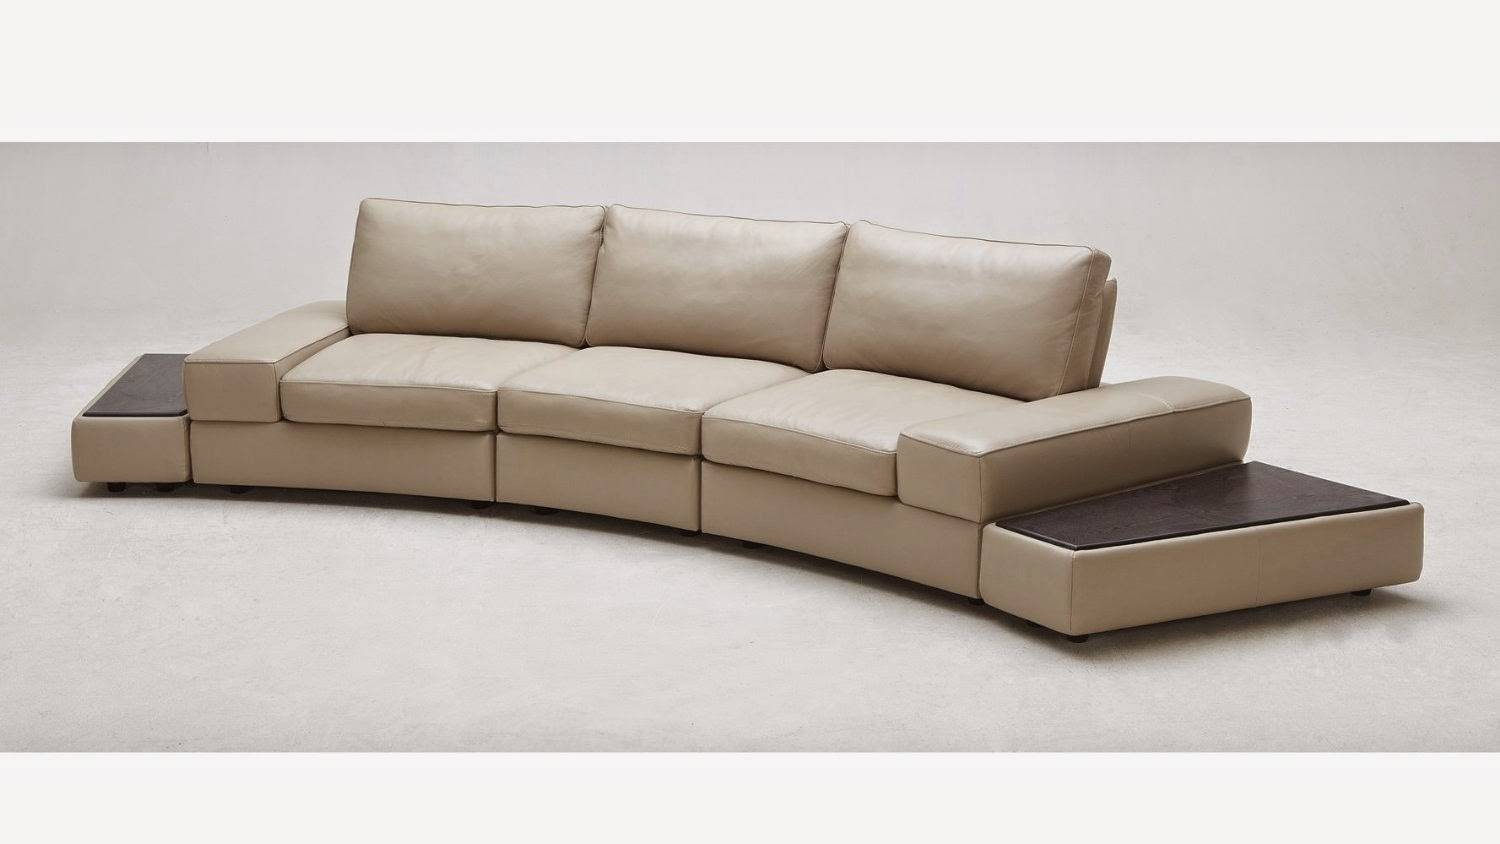 Furniture: Alluring Unique Curved Couches With Classic Design Home inside Conversation Sofa Sectional (Image 16 of 30)